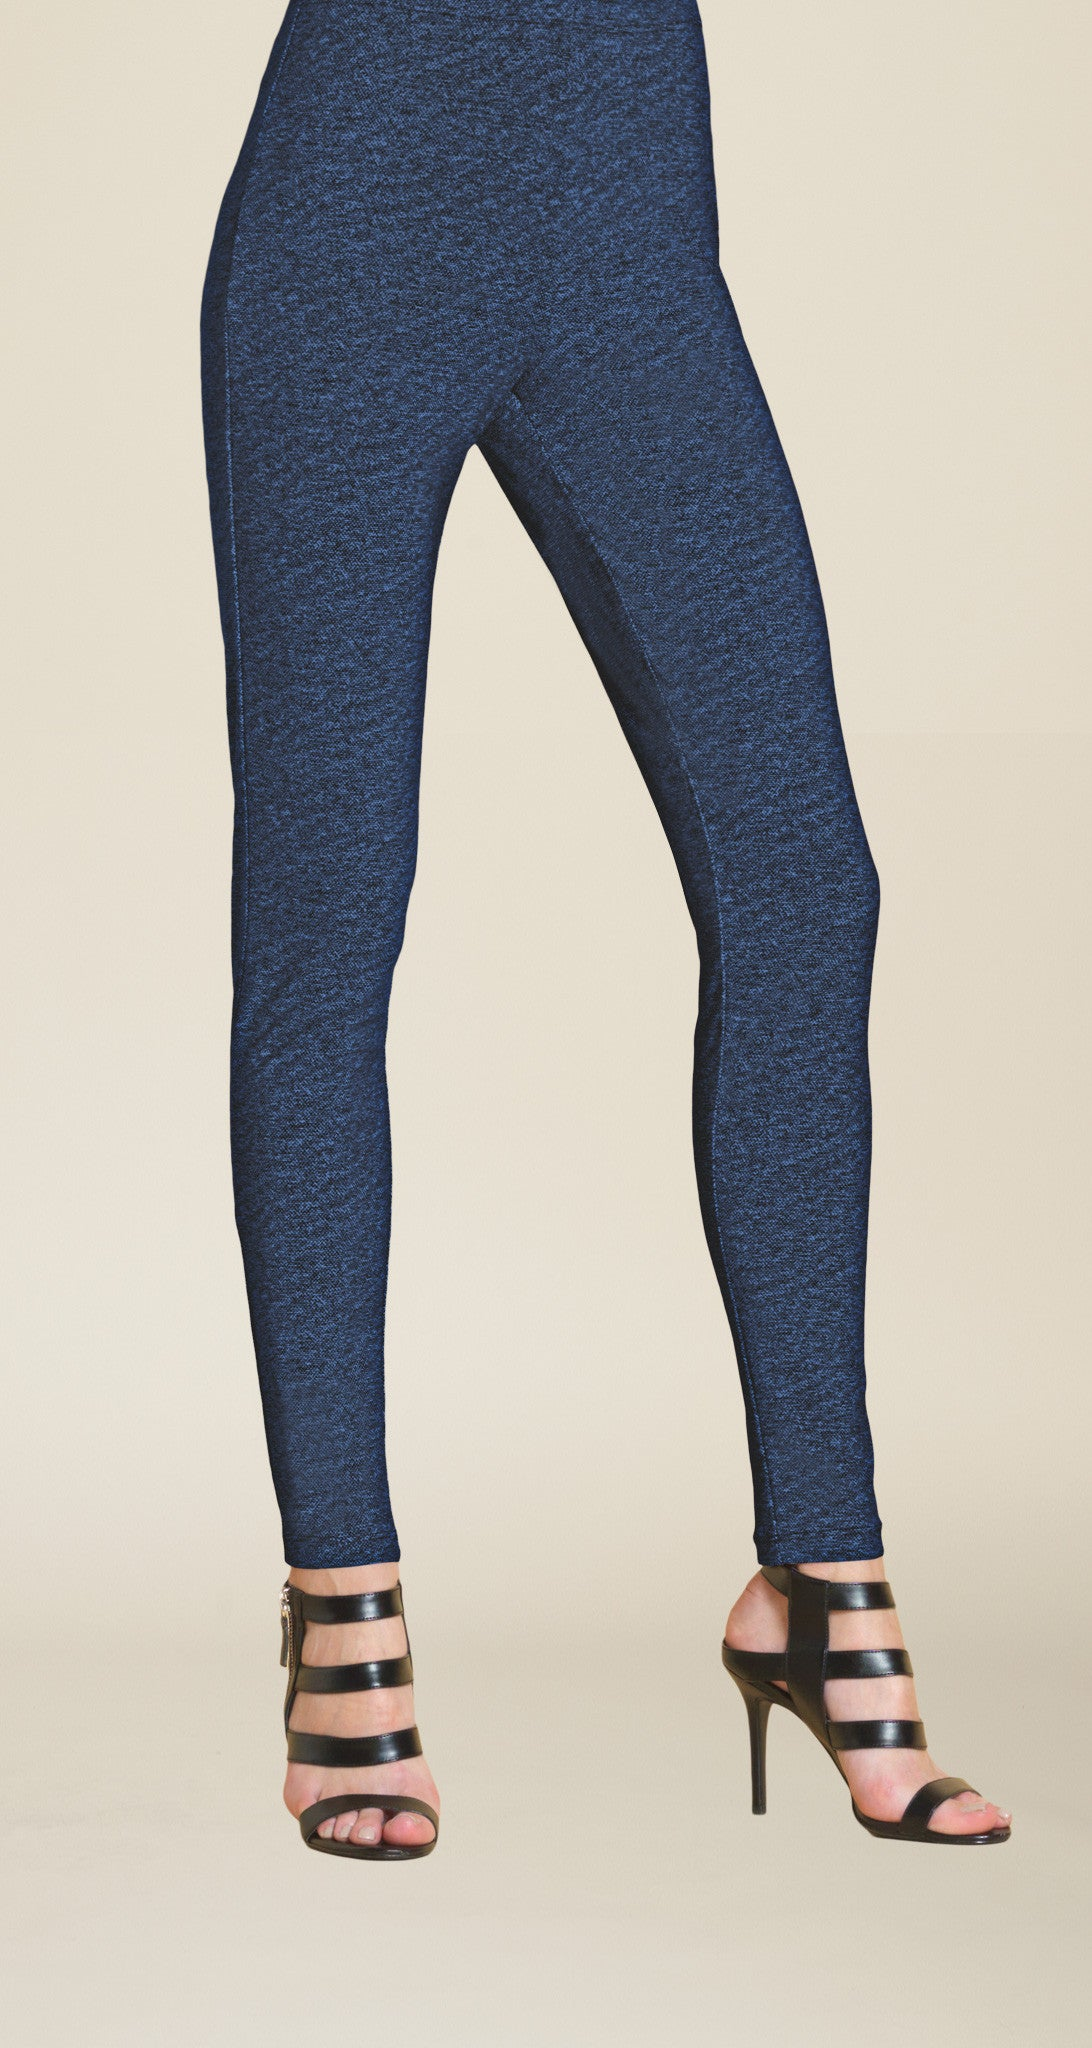 Denim Print Legging - Blue Denim - Final Sale!